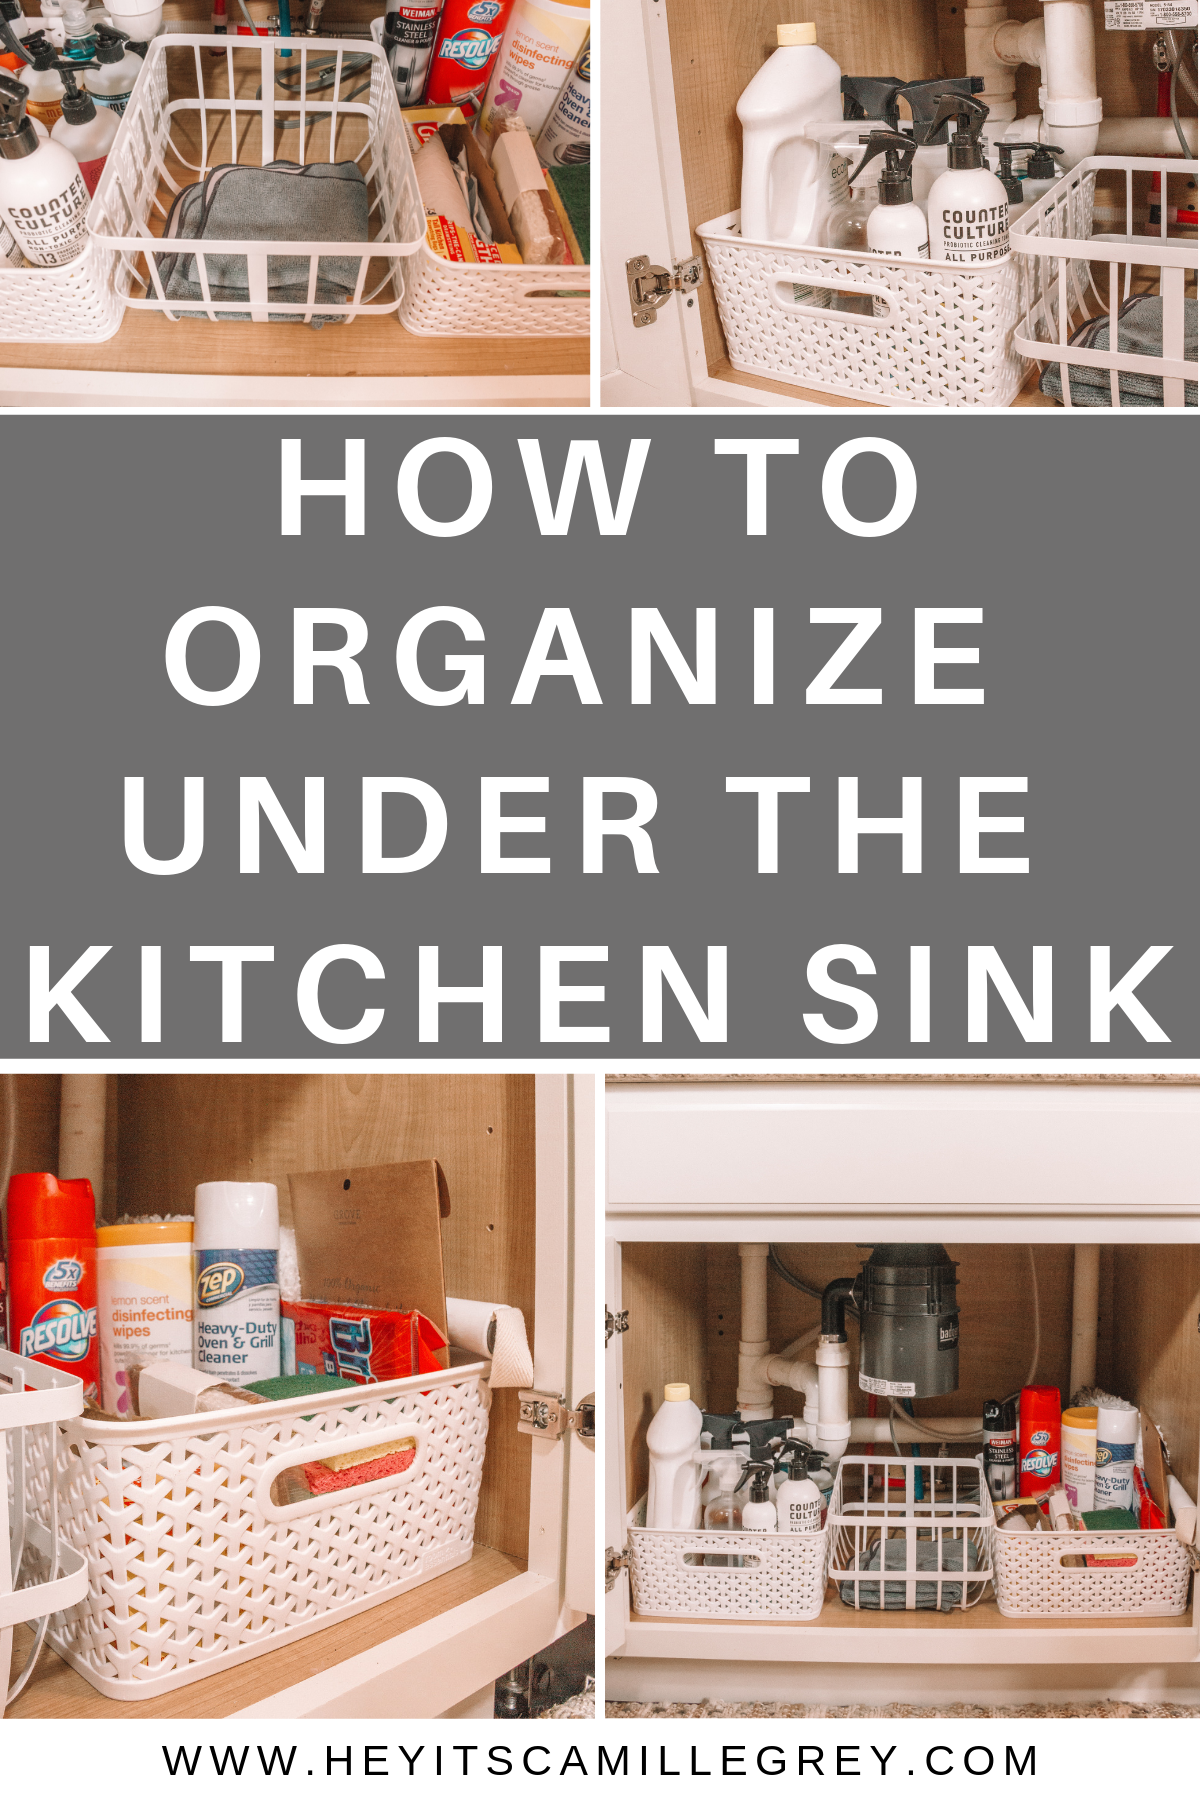 How to Organize Under the Kitchen Sink | Hey Its Camille Grey #organize #kitchensink #kitchen #organization